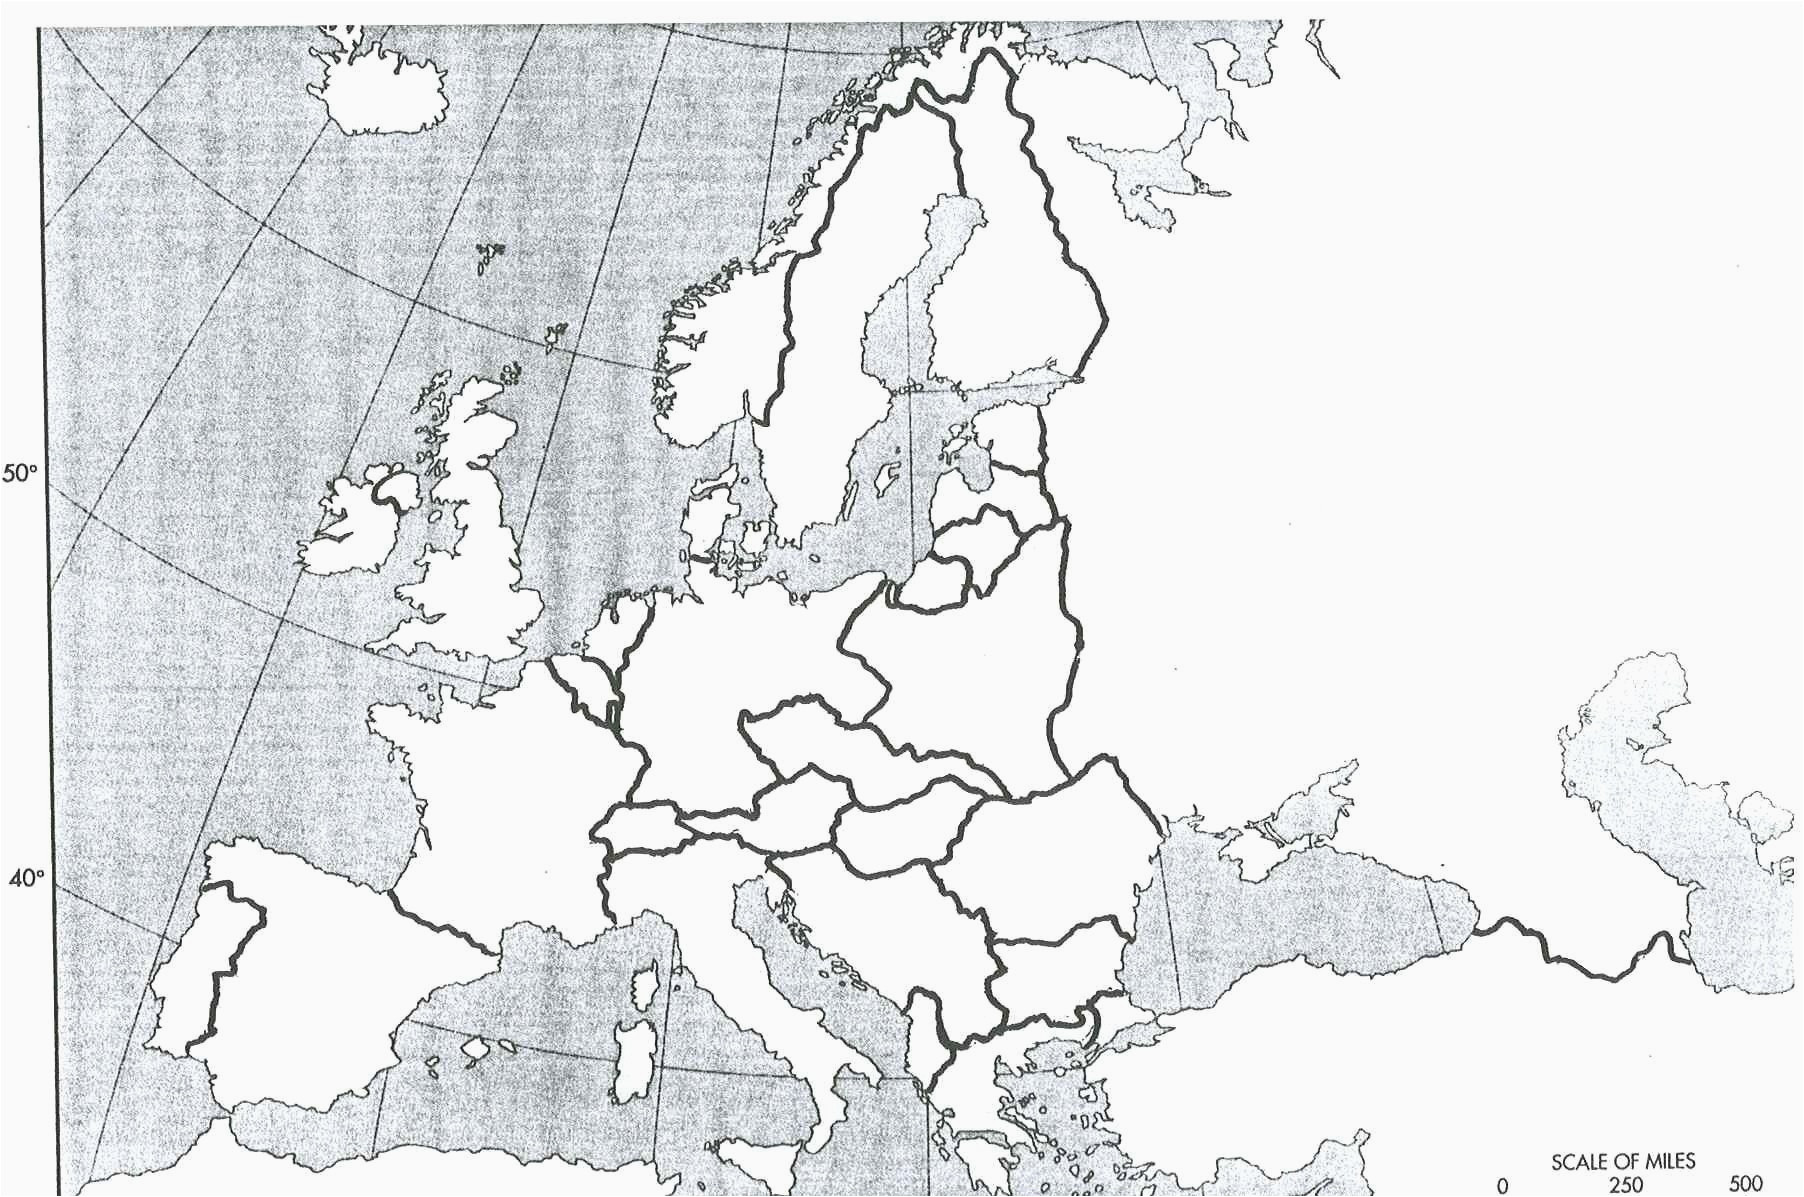 Europe Map to Scale Five Continents the World Best Europe In World War 1 Map